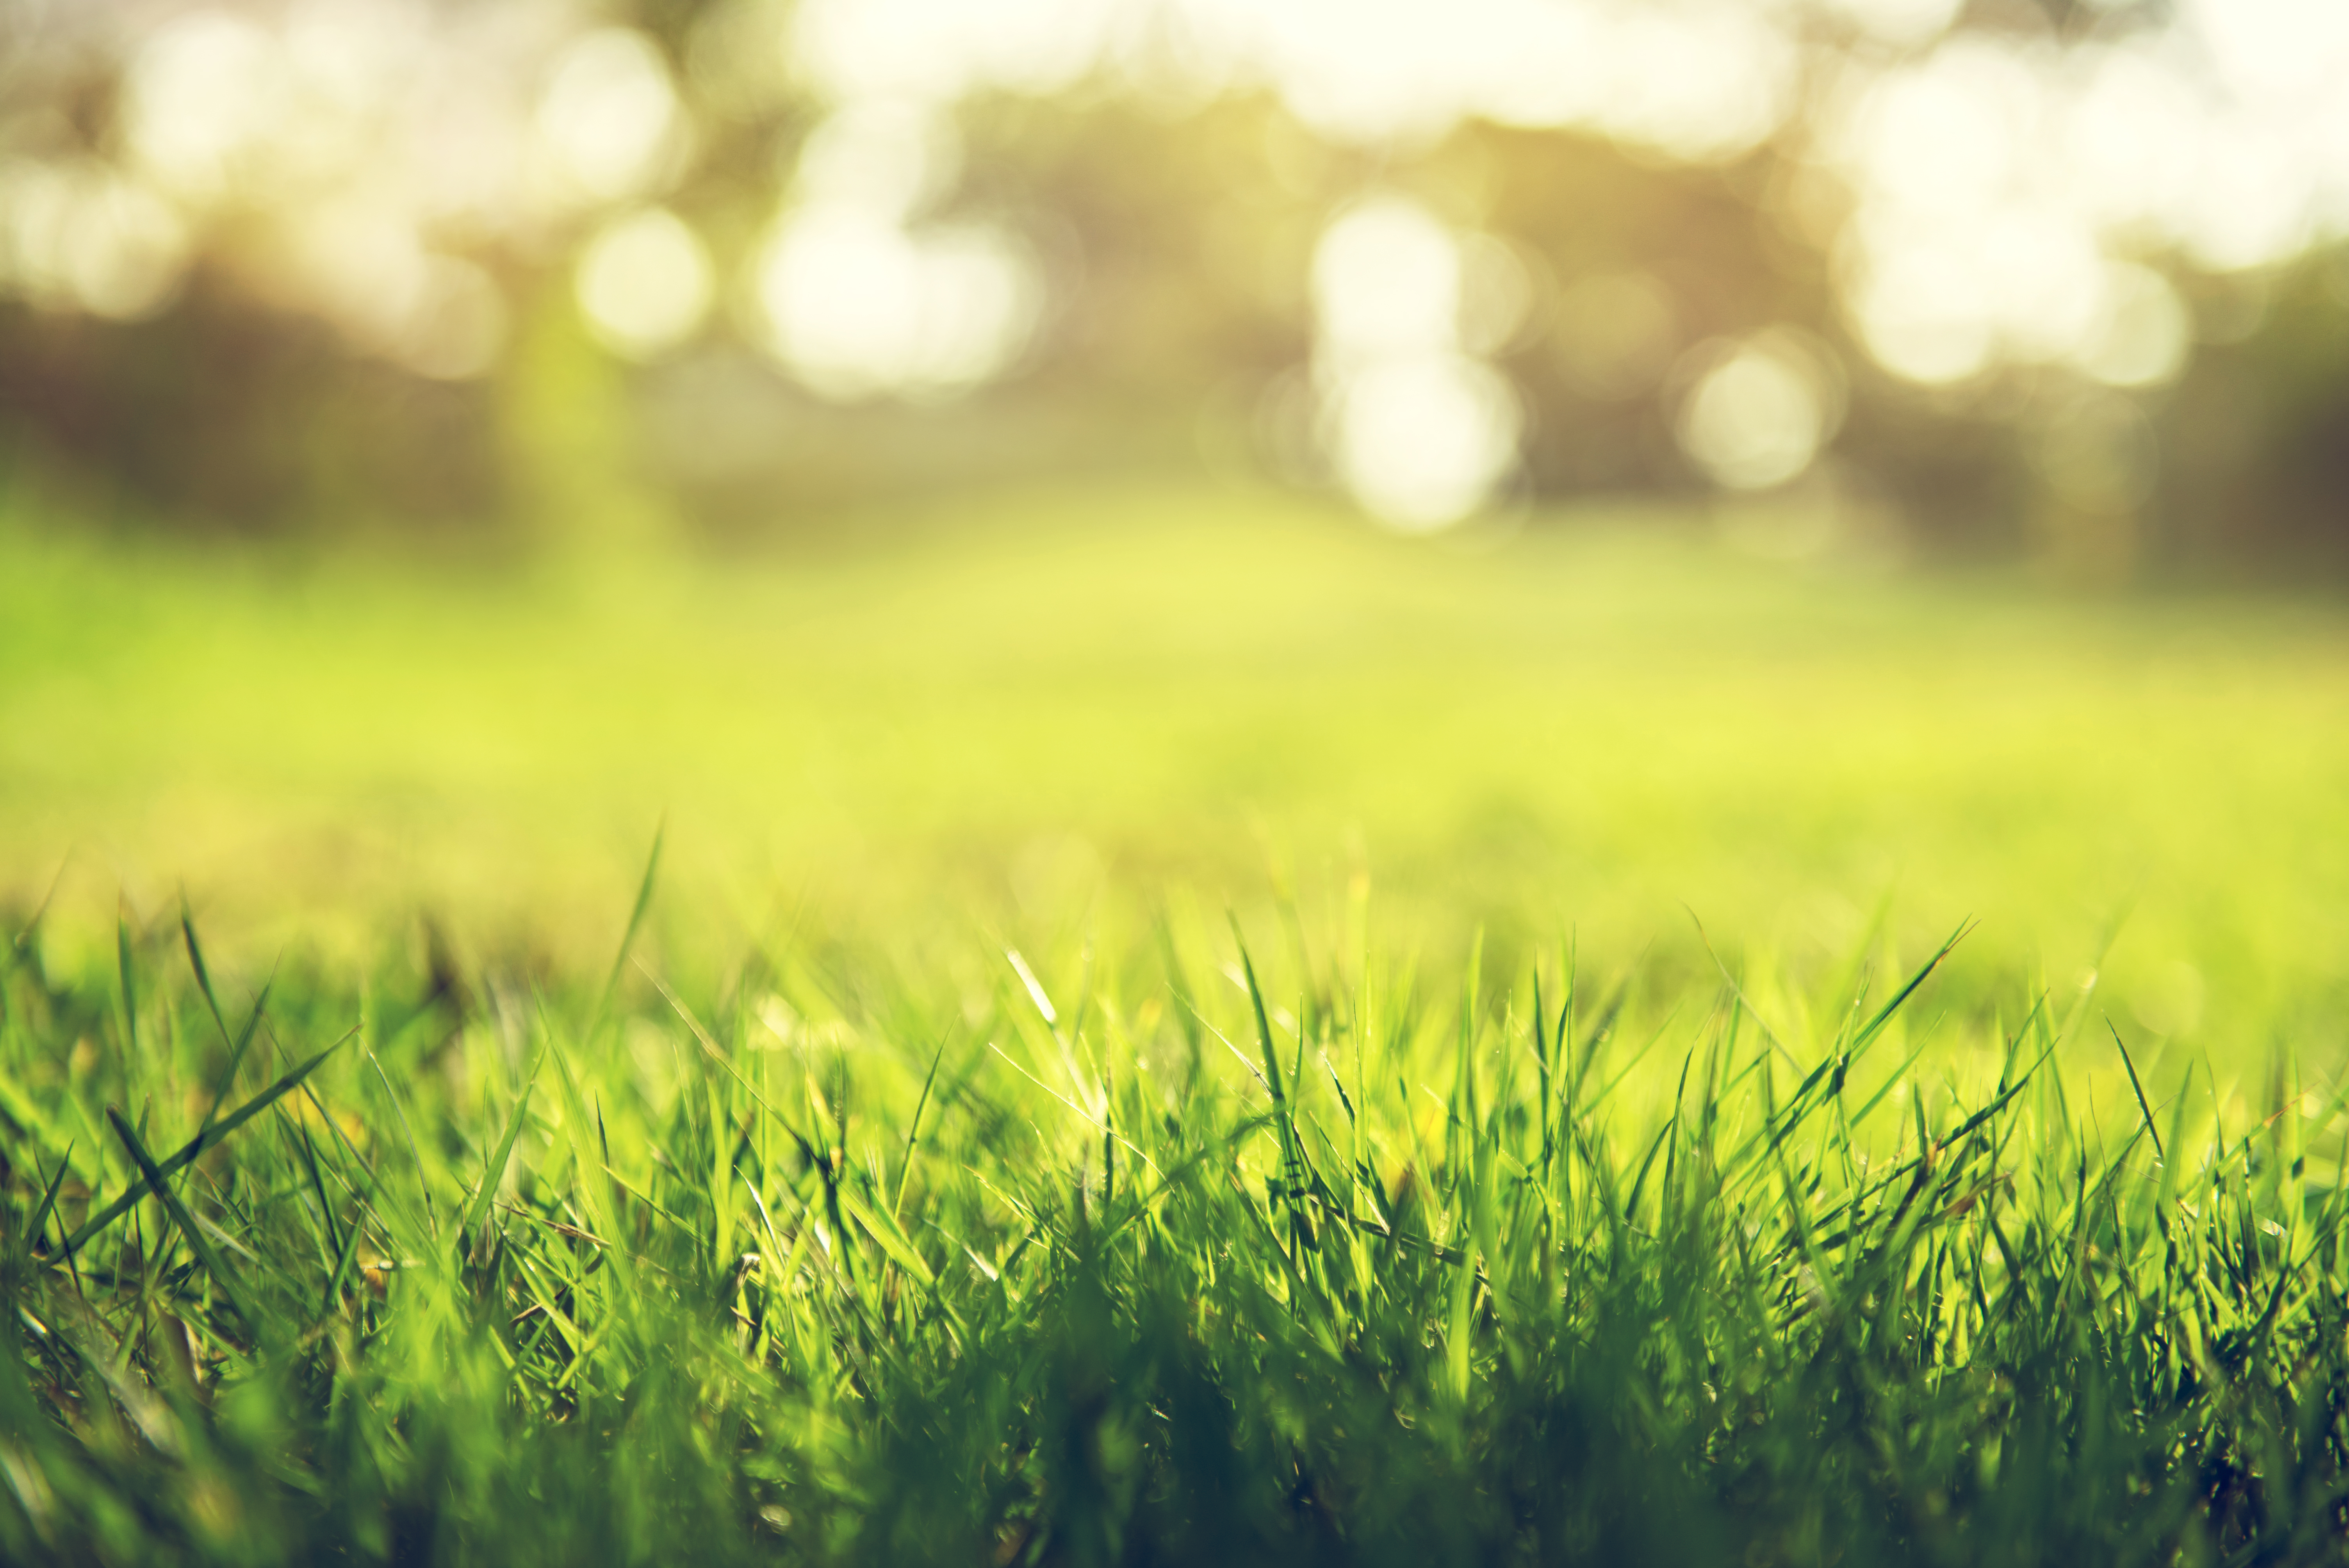 How to Kill Grass With Bleach | Home Guides | SF Gate